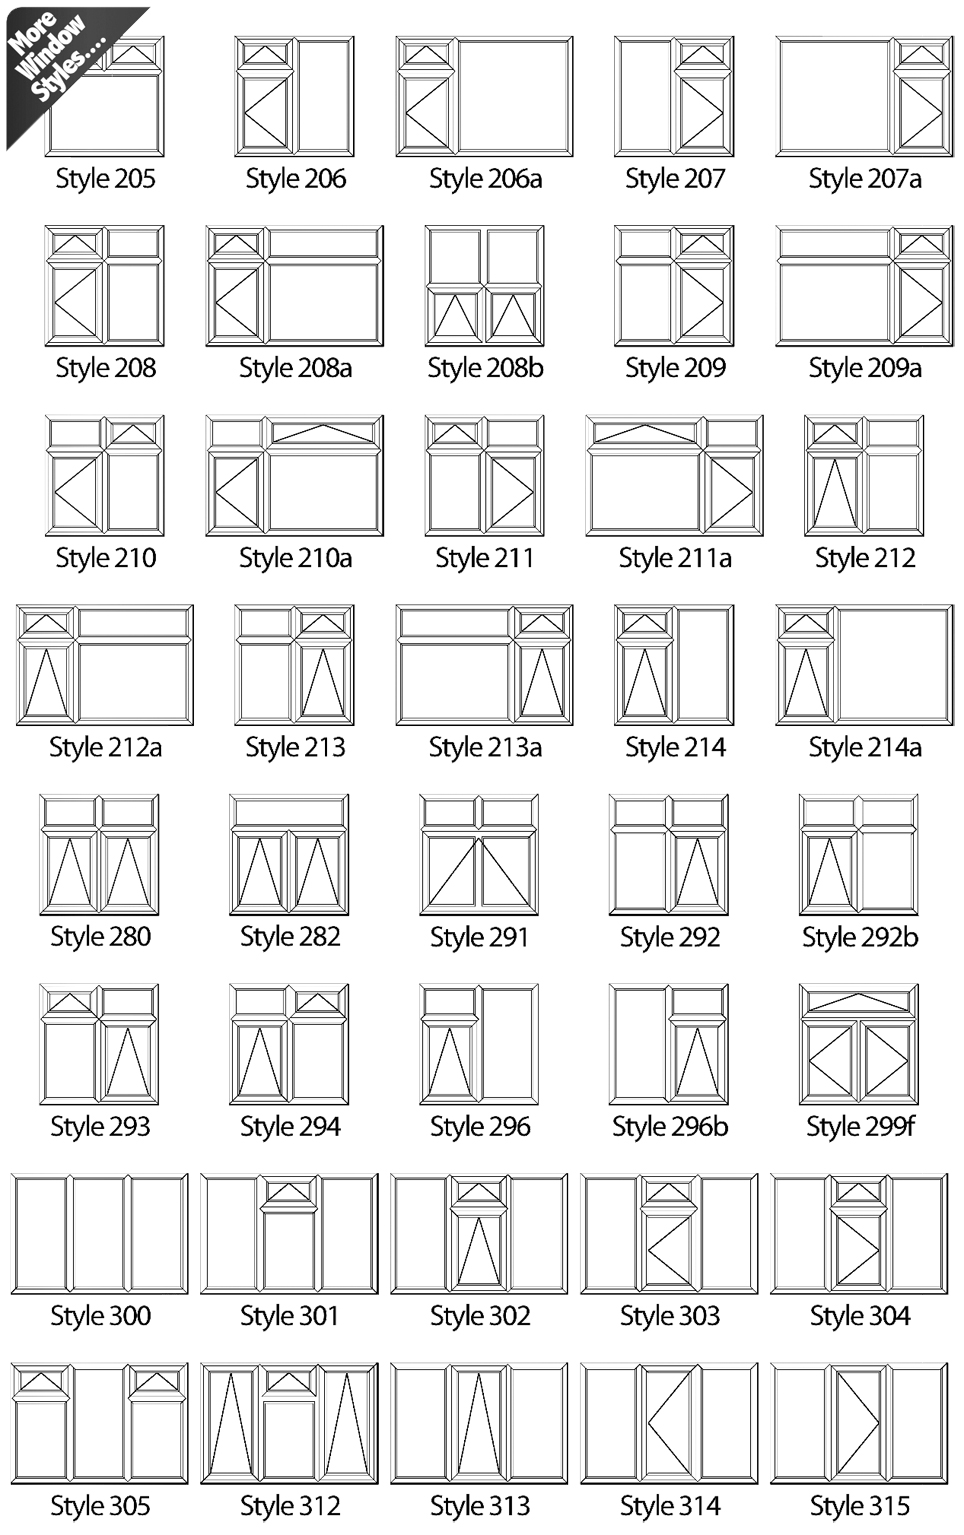 Images Below Show The Variety Of Window Styles Available Featuring Diffe Opening Types